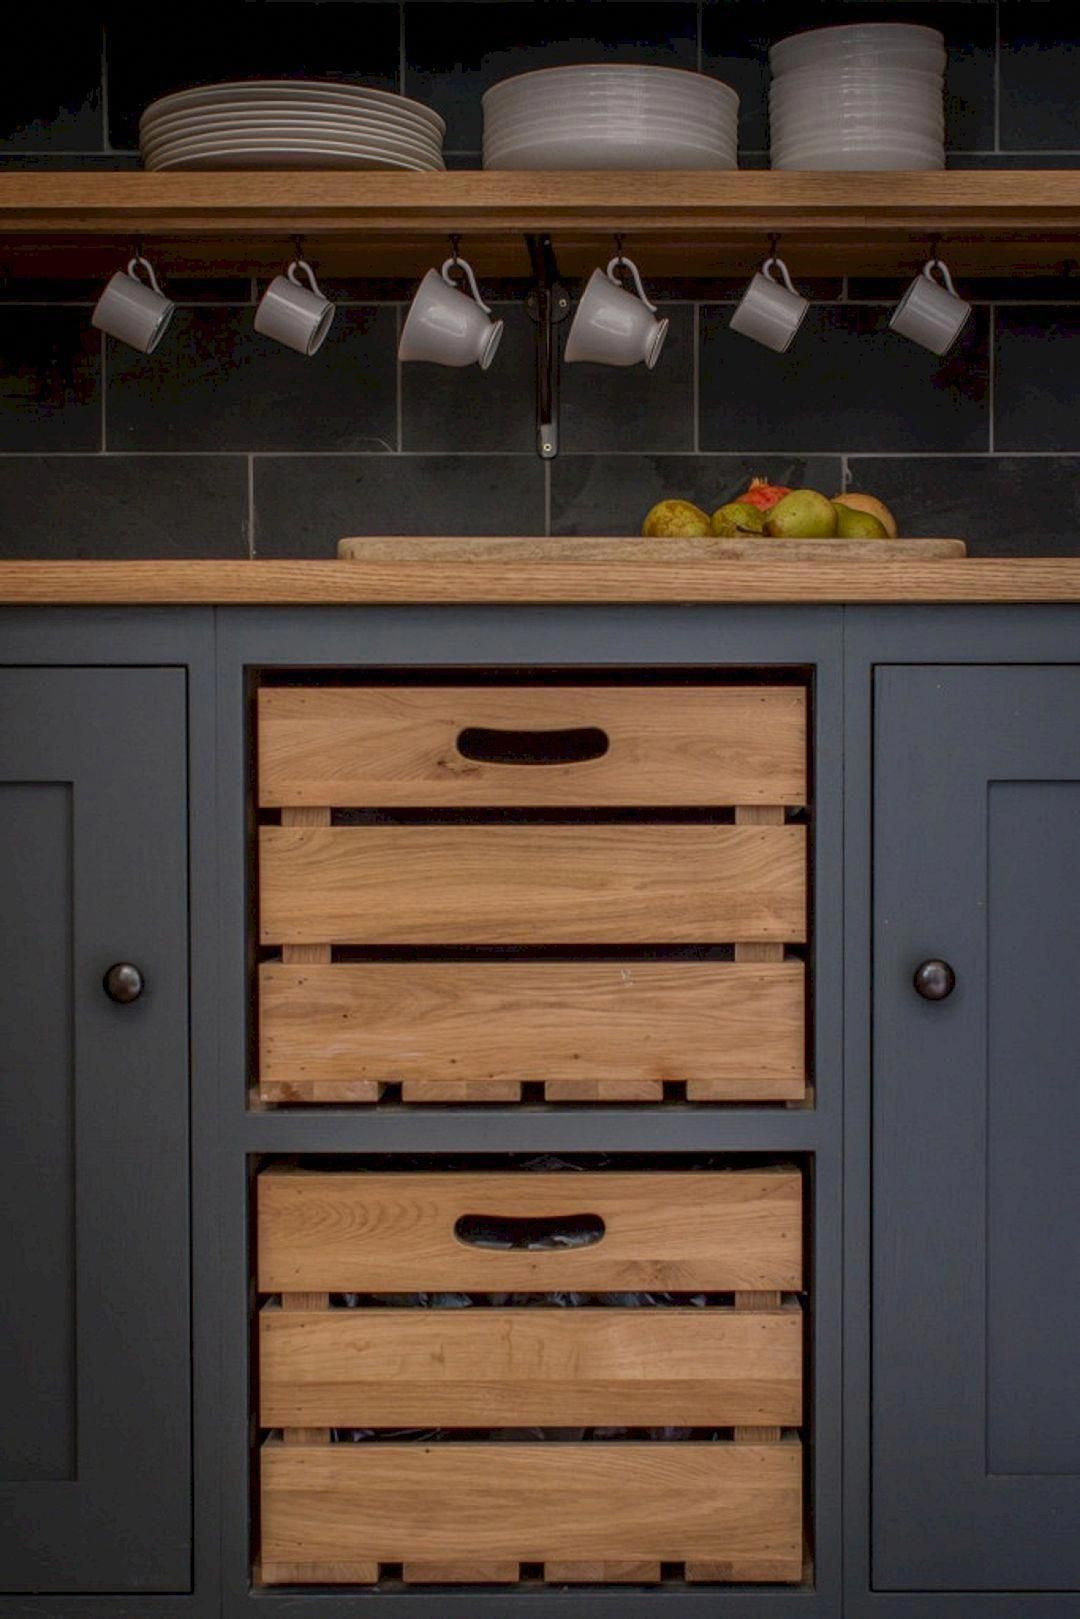 Pin on Simplistic and Elegant Kitchen Décor